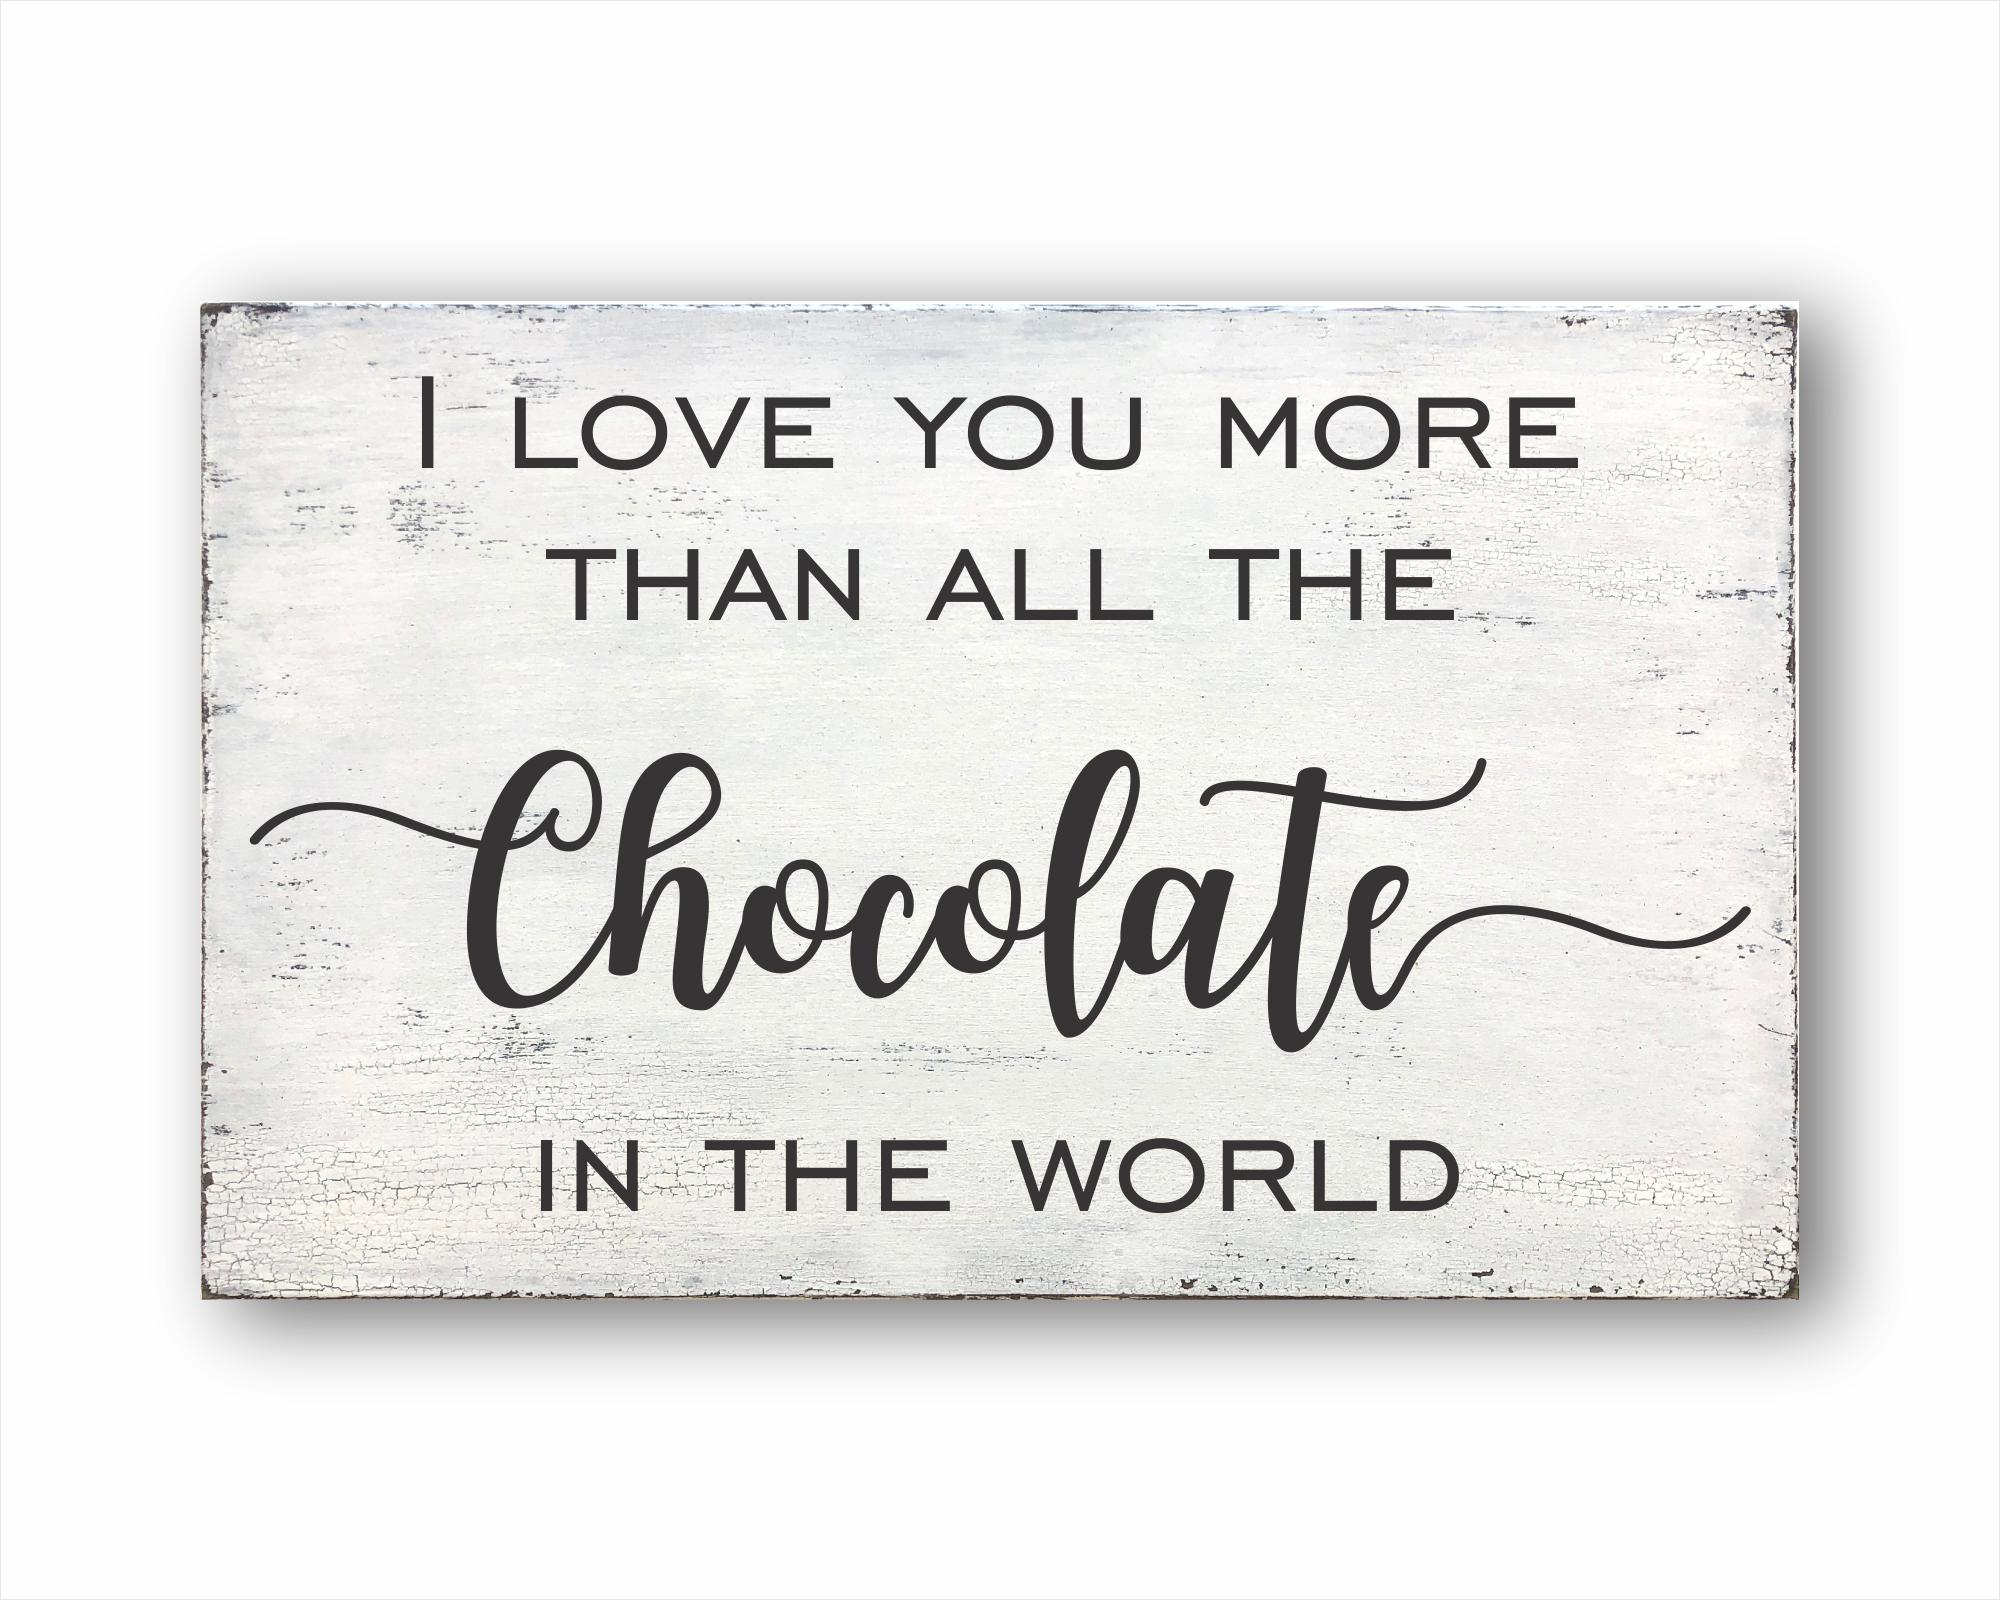 I Love You More Than All The Chocolate In The World: Rustic Rectangular Wood Sign